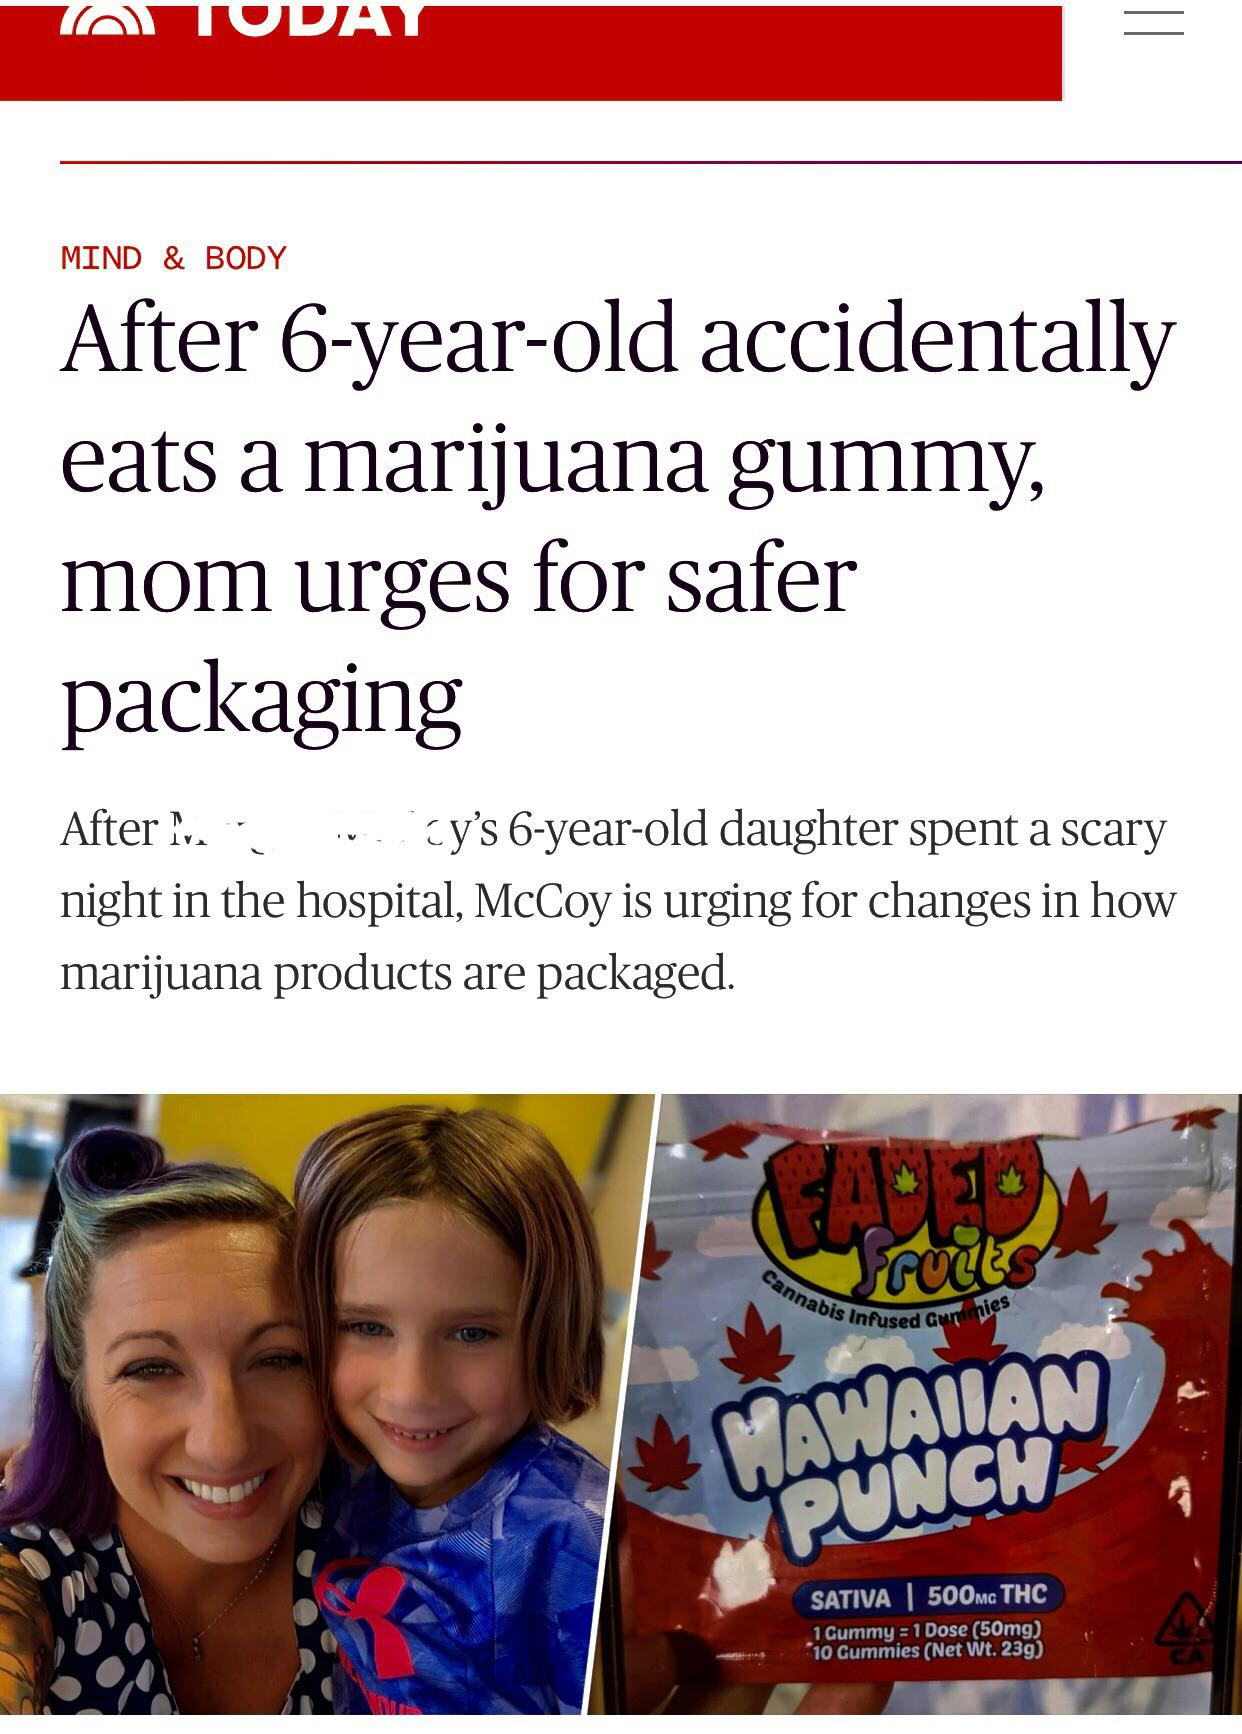 Mom leaves edibles in area accessible to 6 year old who ingests large dose, which turns mom into raging Karen